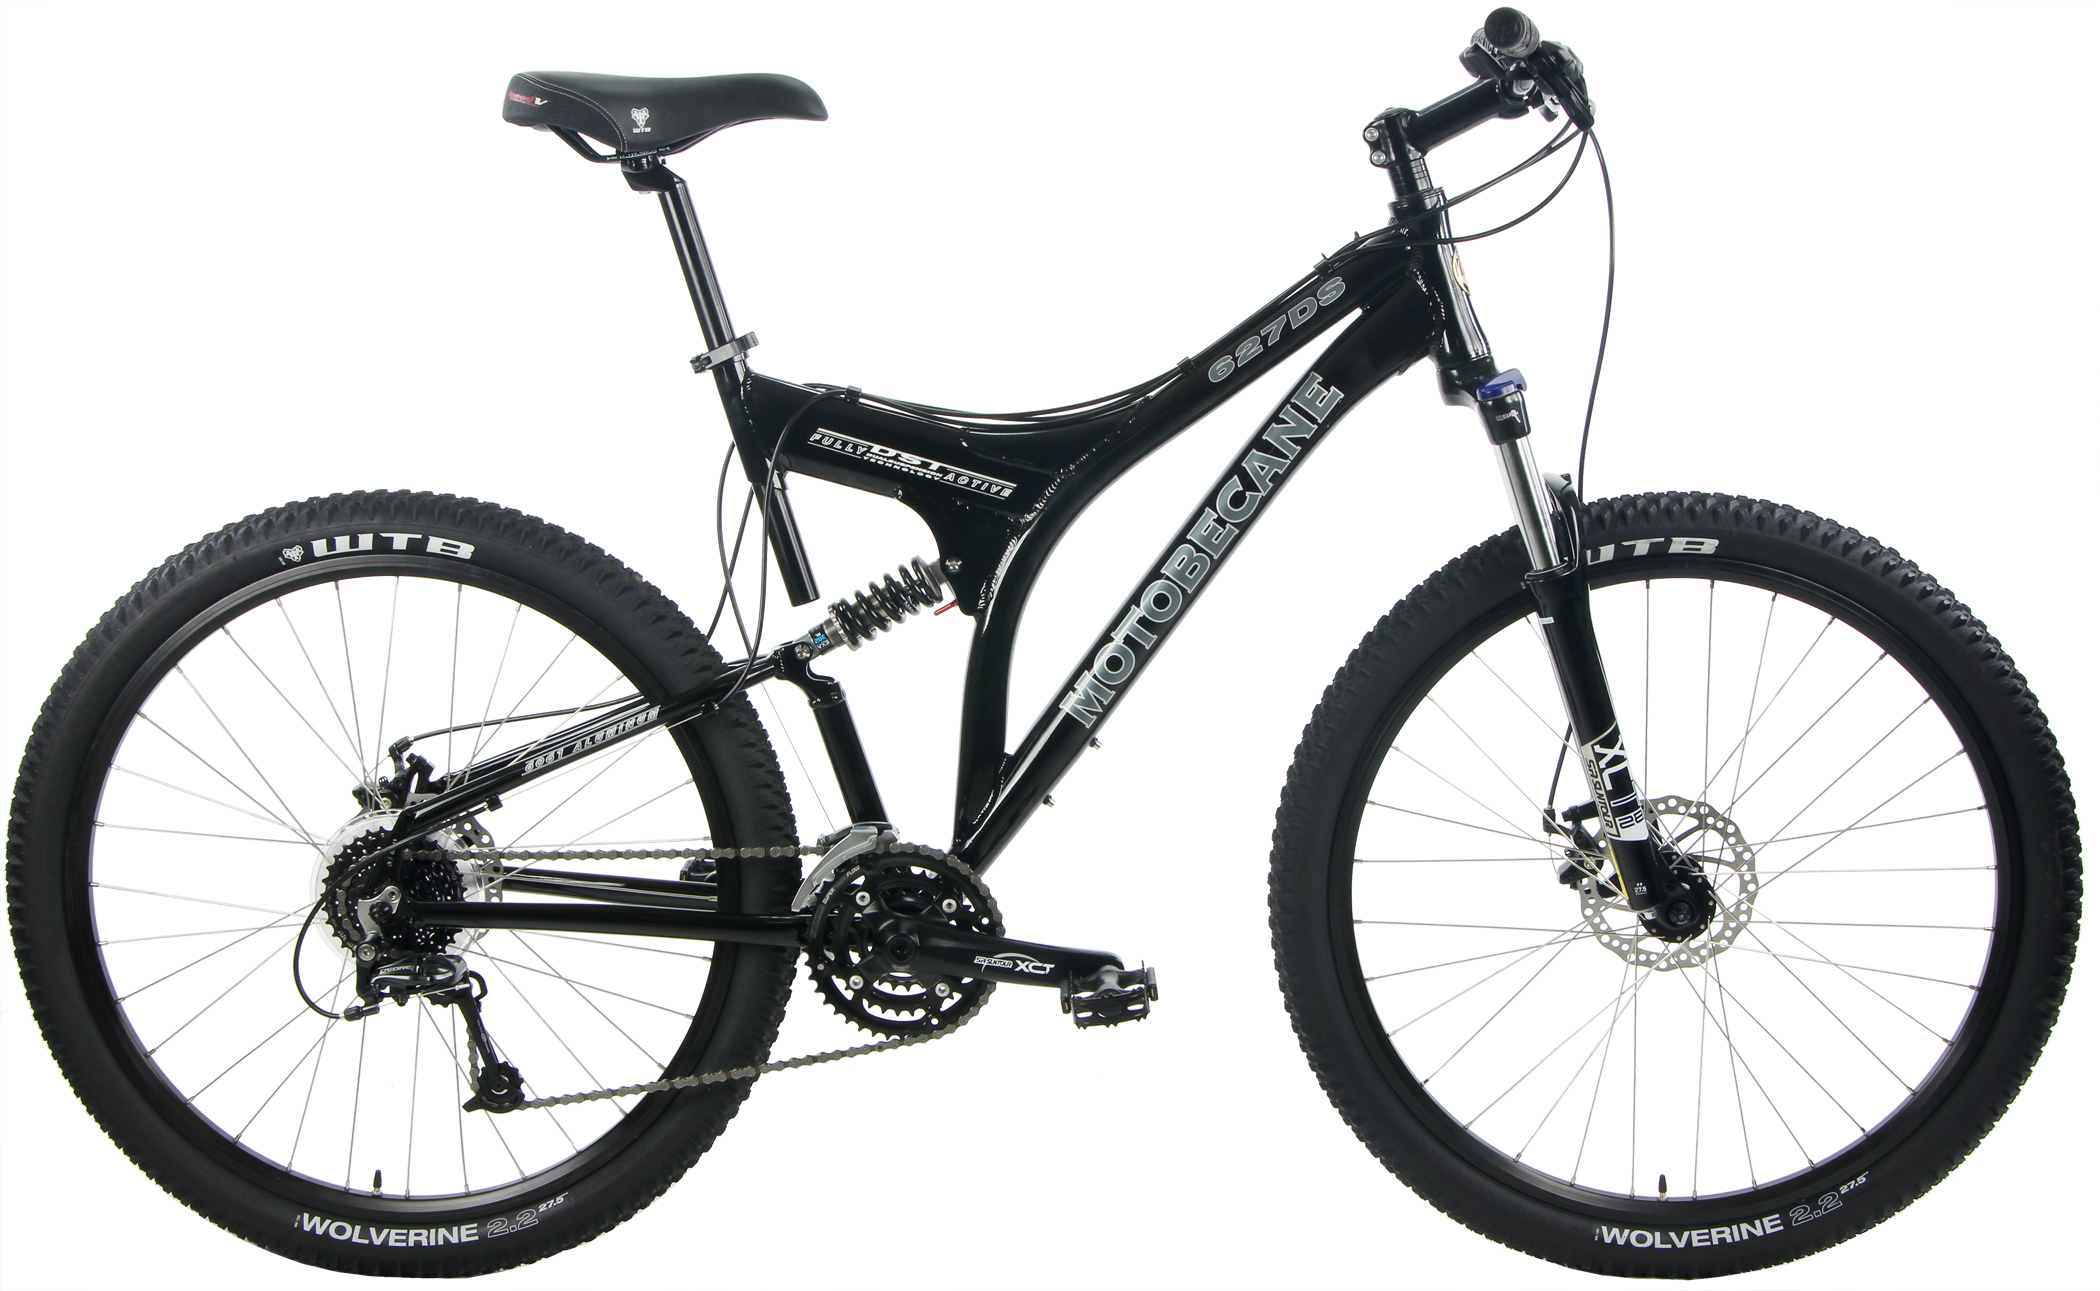 627DS - ALUMINUM FULL SUSPENSION w/ DISC BRAKES & SHIMANO